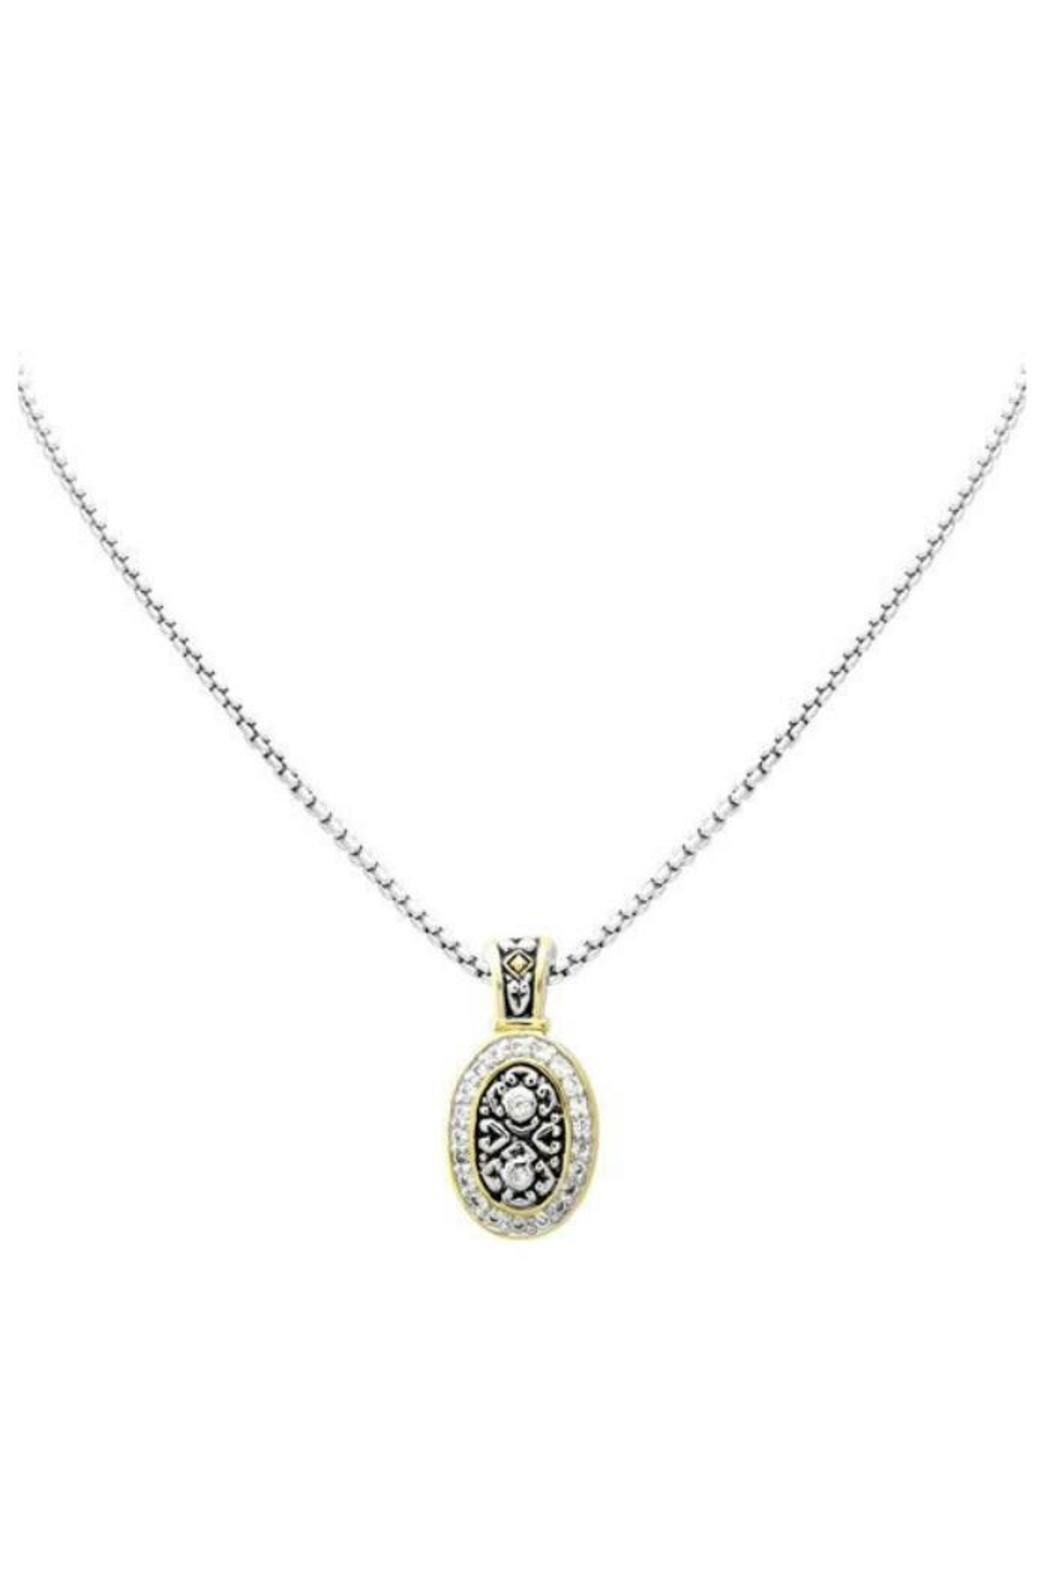 JOHN MEDEIROS Vertical-Oval Pave Necklace - Main Image